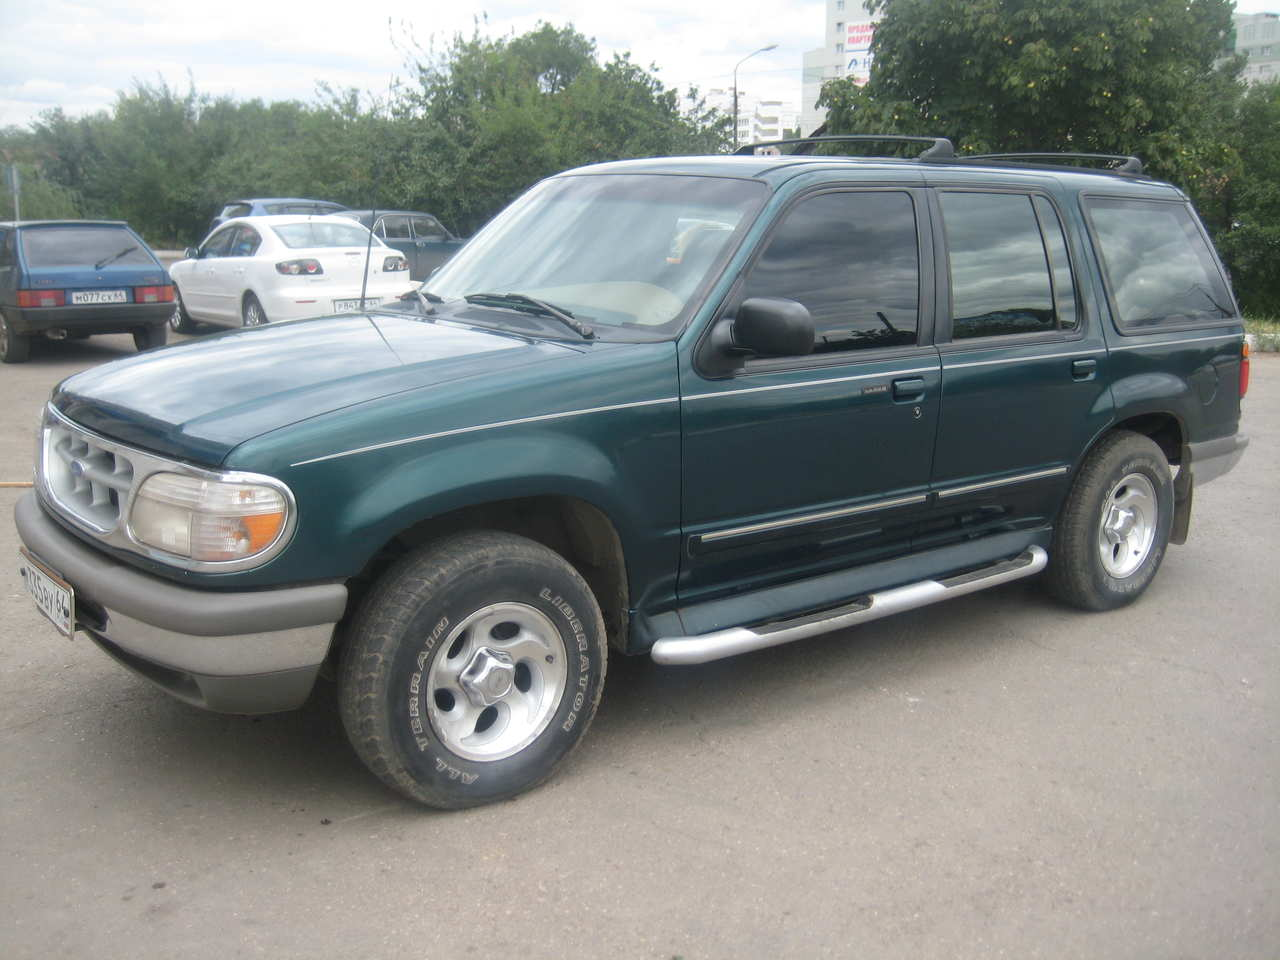 1995 ford explorer specs, engine size 4.0l., fuel type gasoline, drive  wheels 4wd, transmission gearbox automatic  car directory